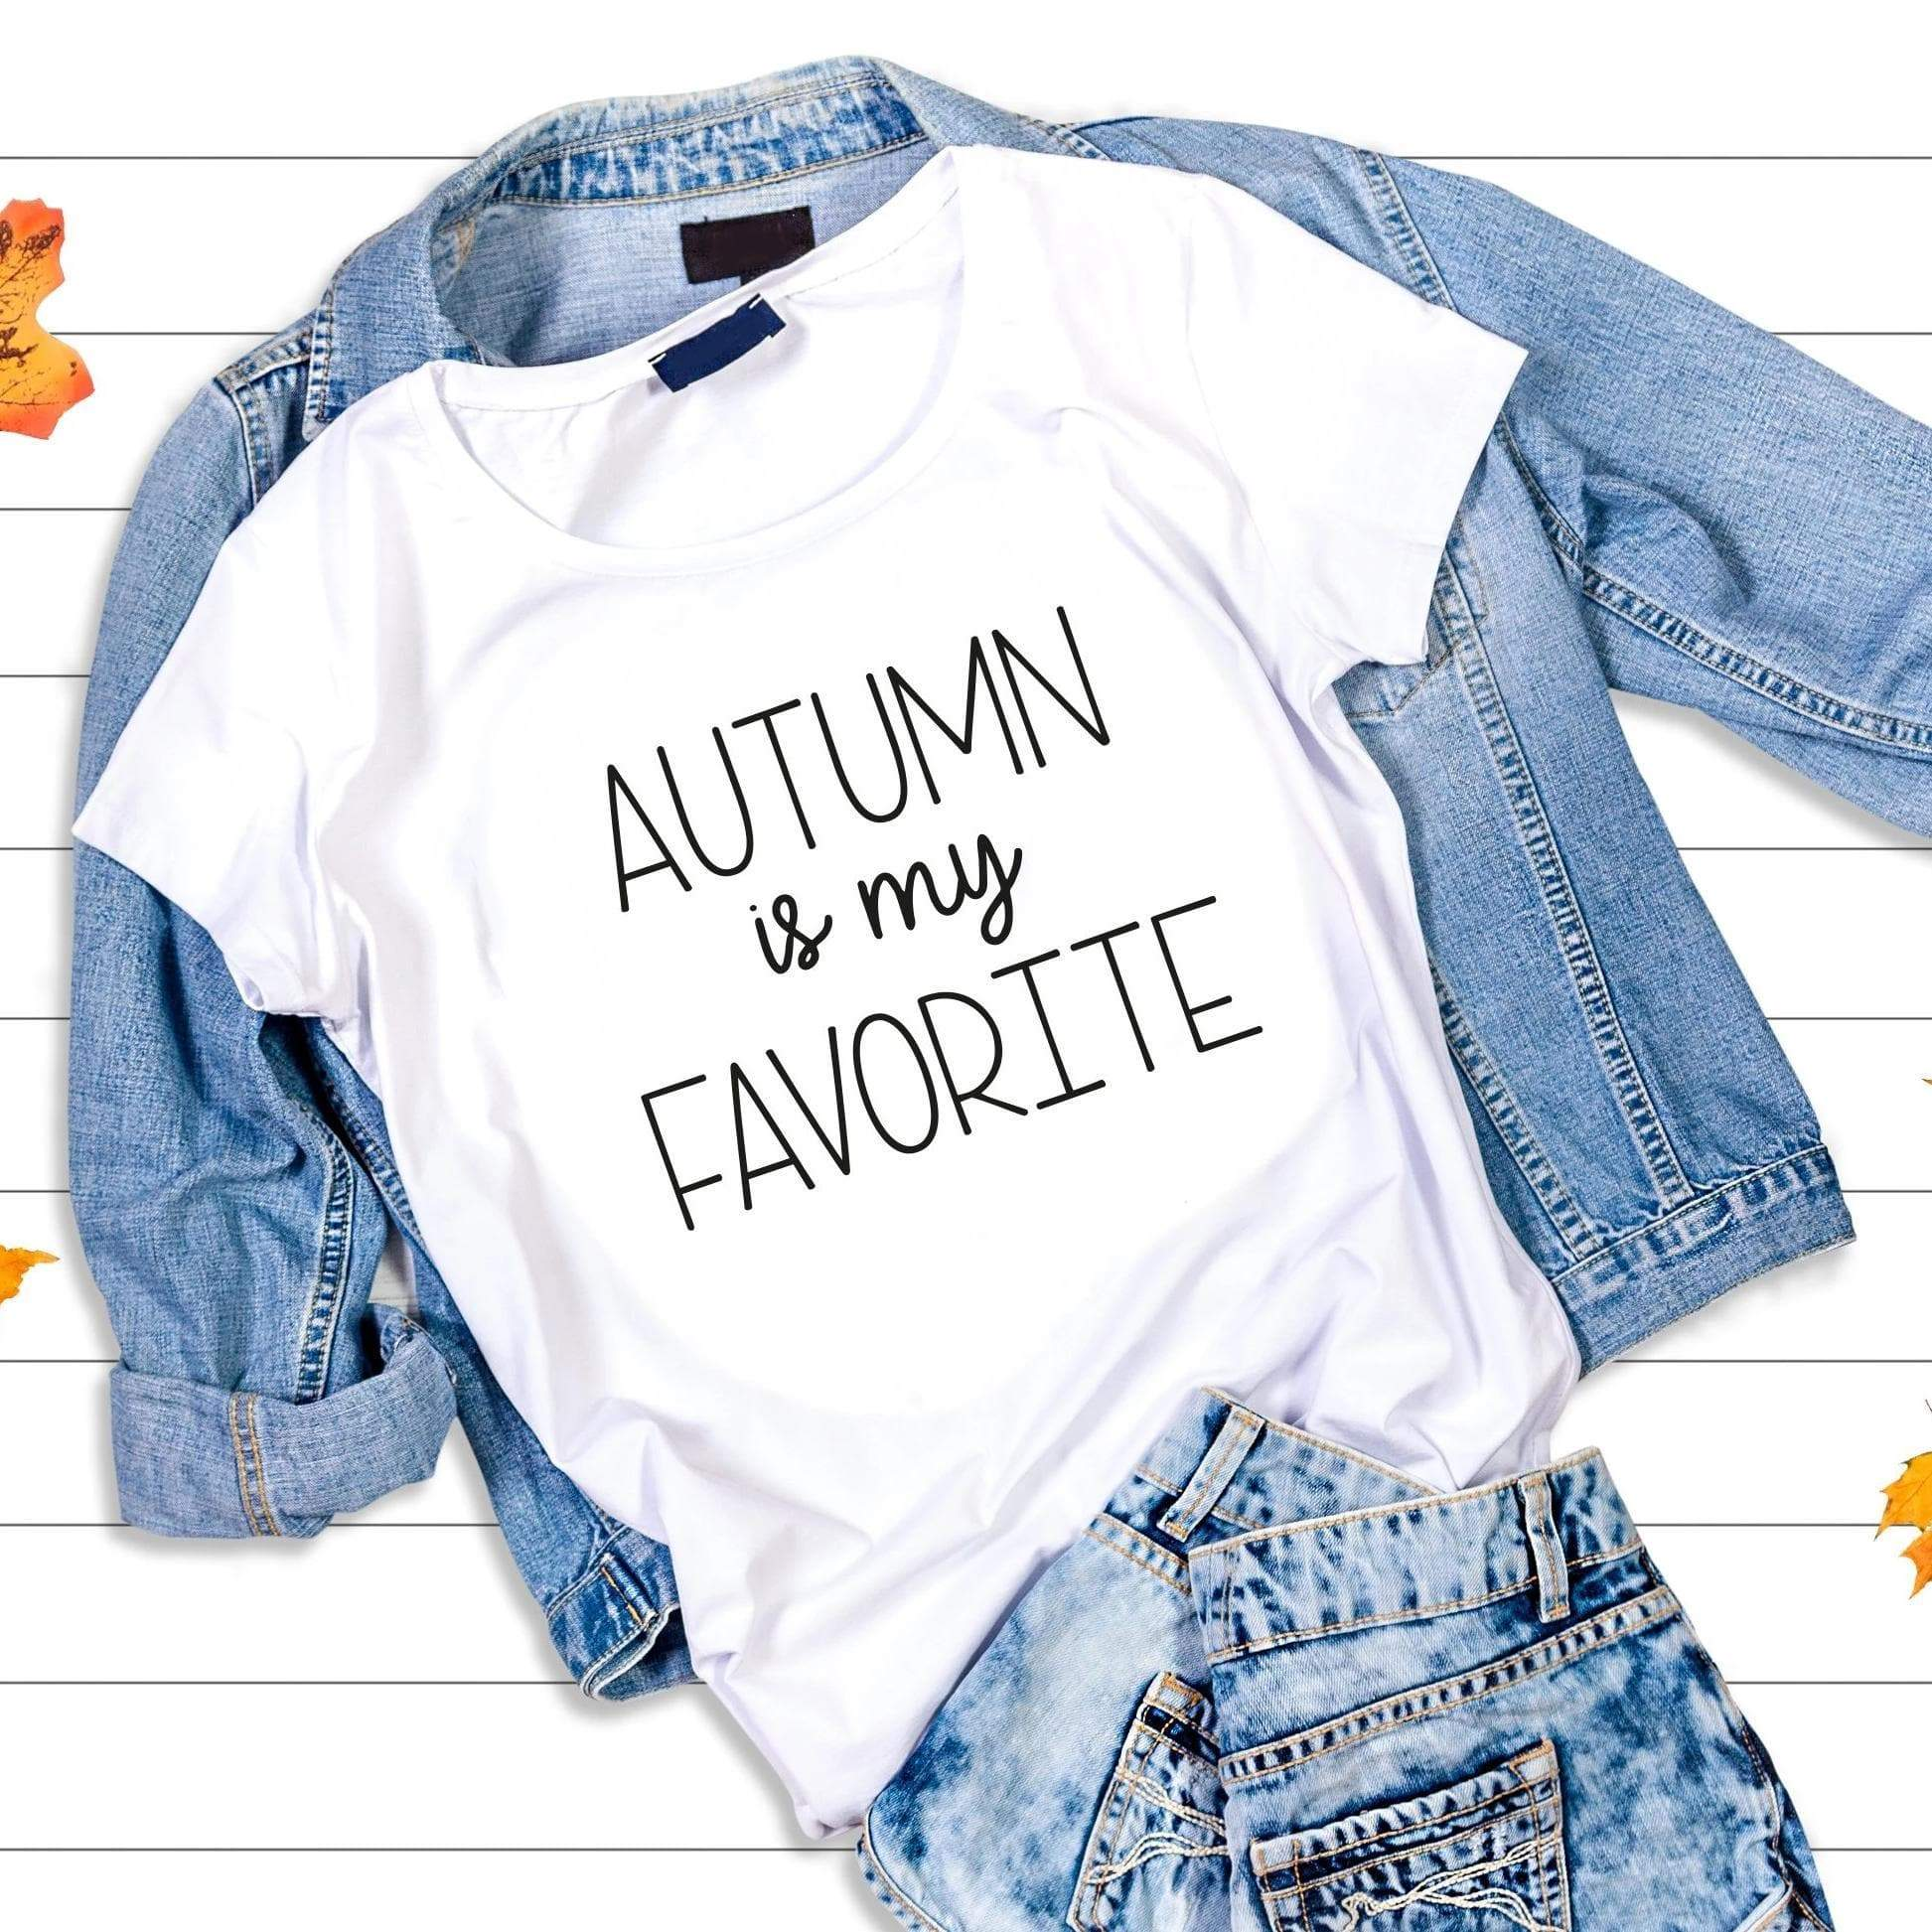 Leanne & Co. Shirt Autumn Is My Favorite Short-Sleeve Unisex T-Shirt